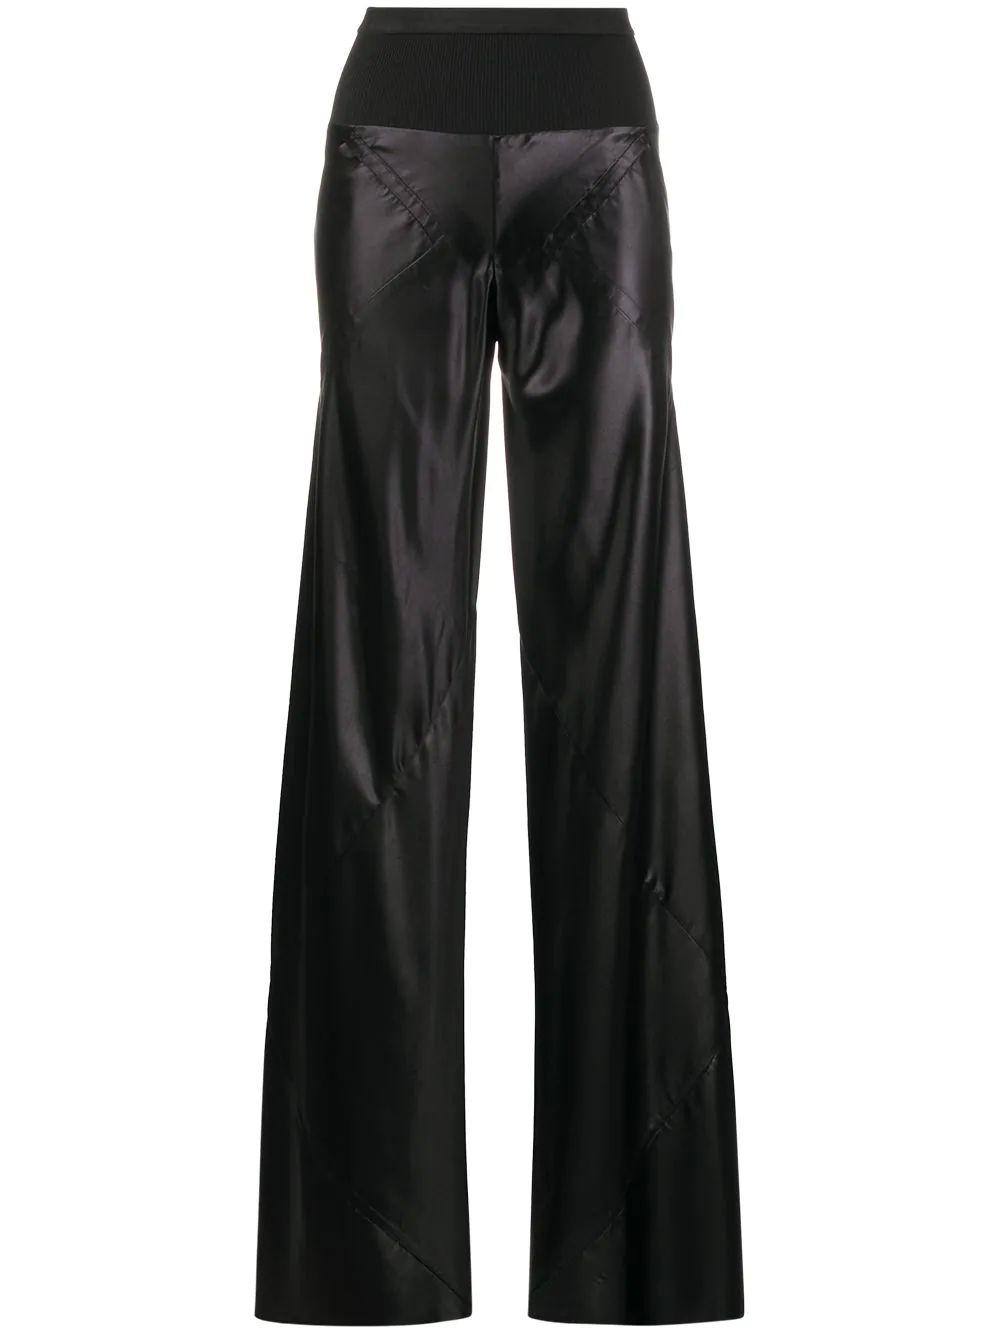 Liquid Leather Bias Cut Printed Pant